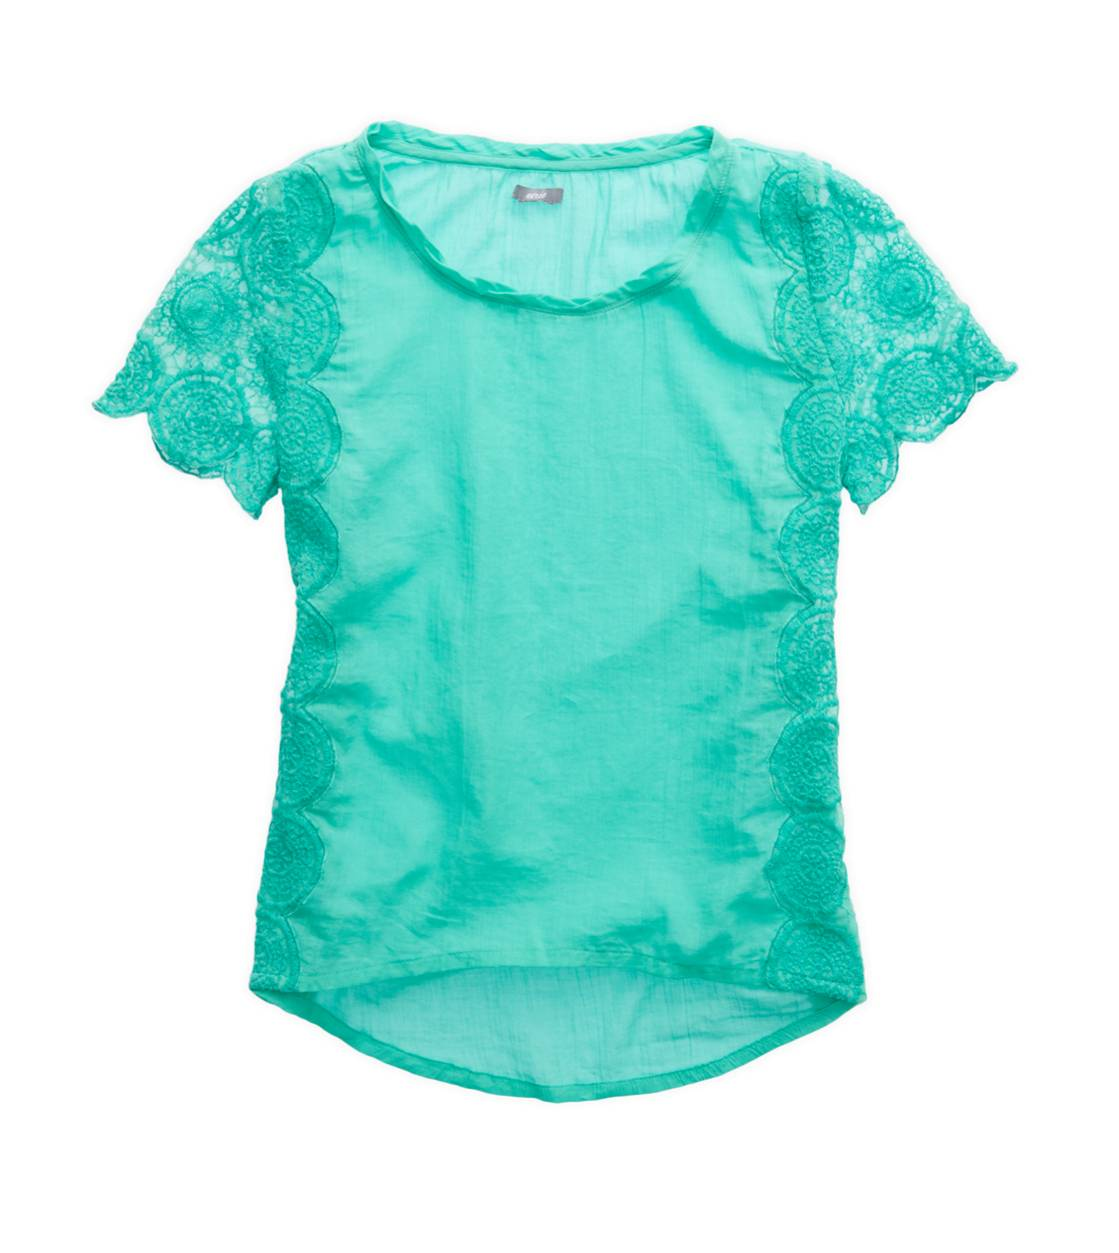 Mint Leaf Aerie Soft Crochet T-Shirt